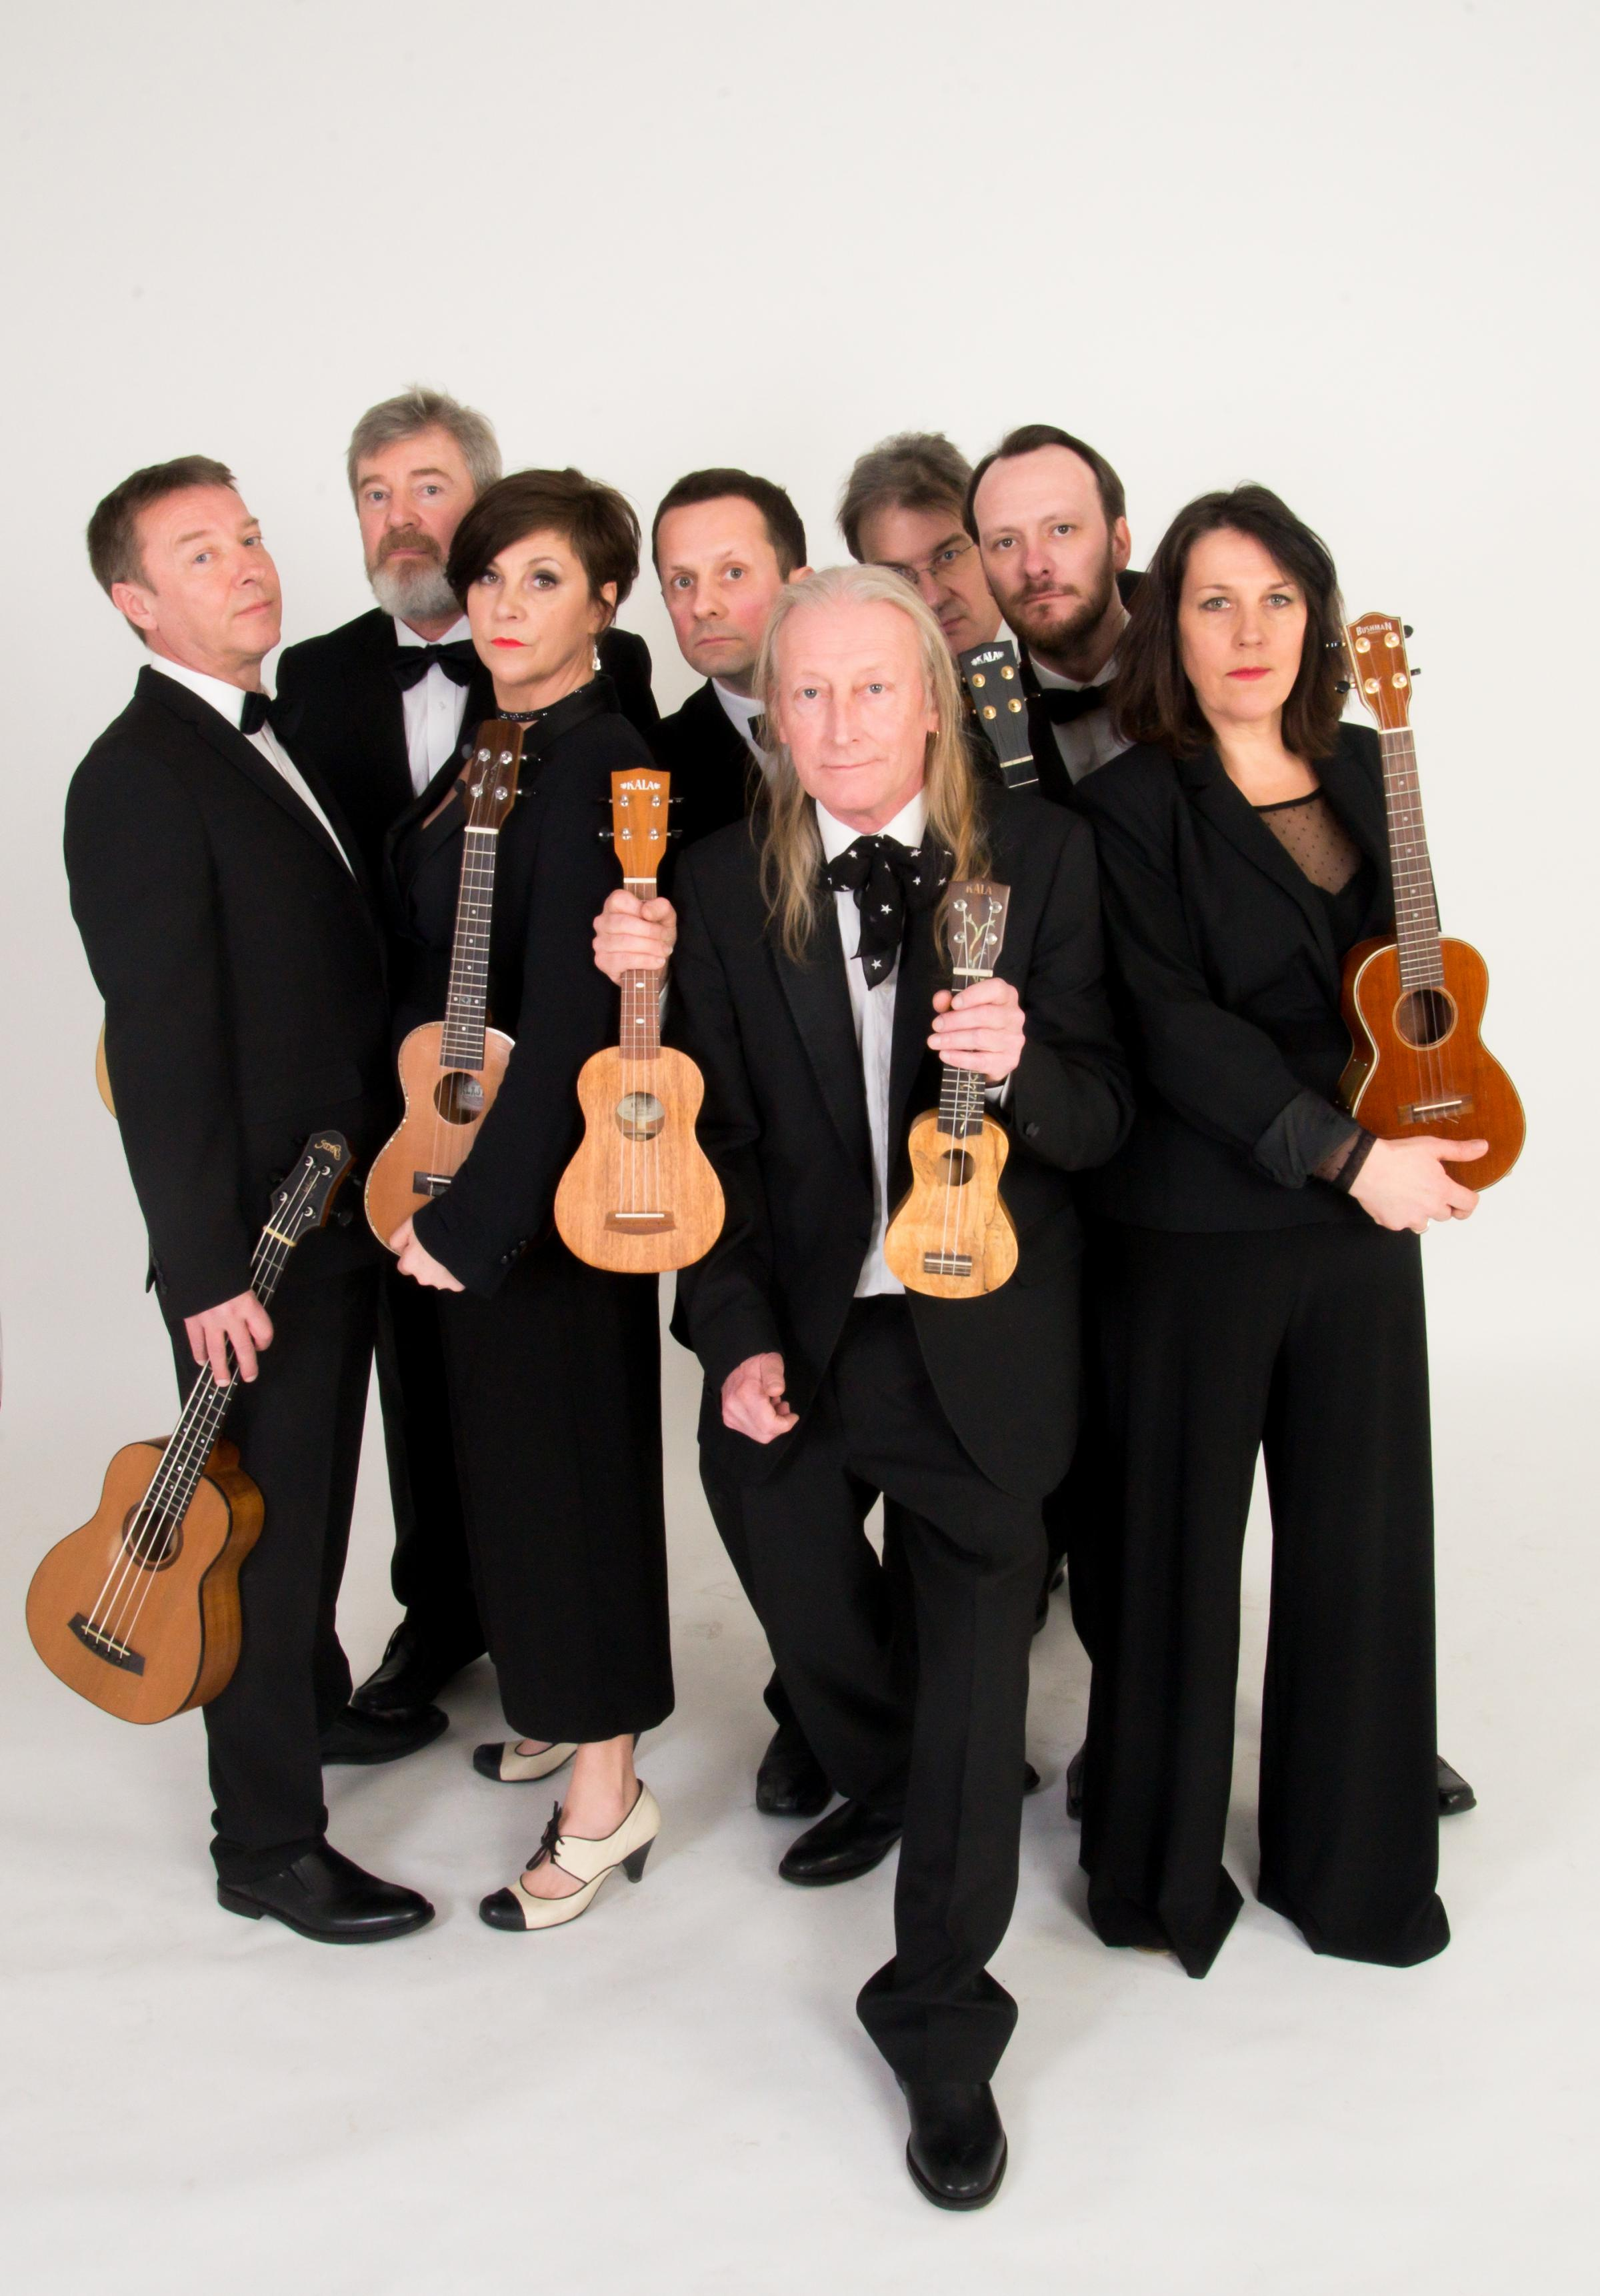 St George's Hall to host ultimate Ukelele show